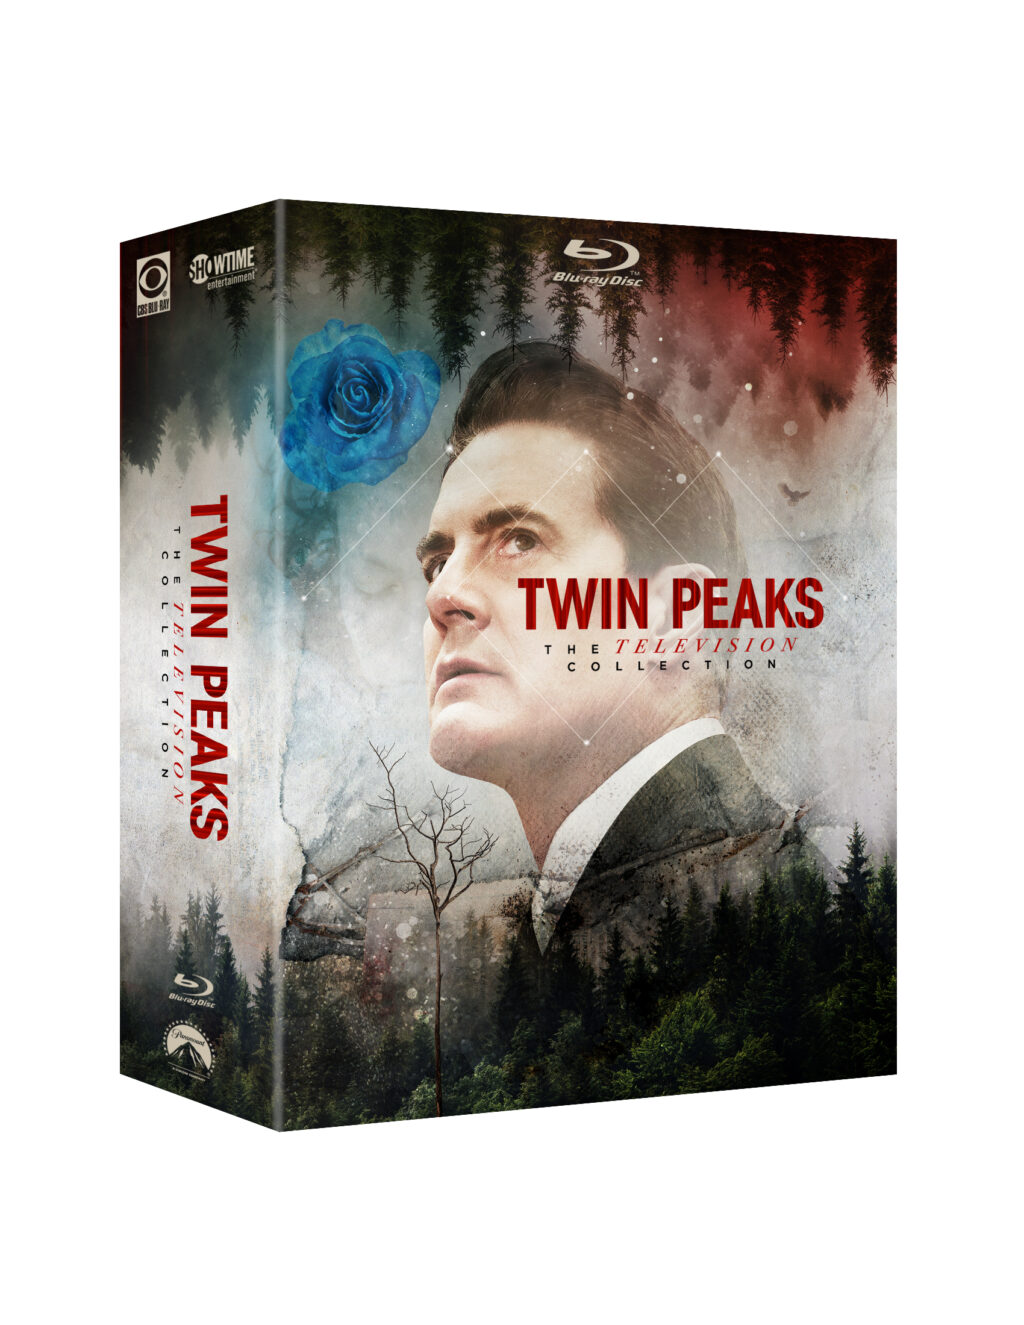 TWINPEAKS CompleteTVSeries BD Skew1 1024x1325 - TWIN PEAKS: FROM Z TO A Is A Damn Fine Collection!